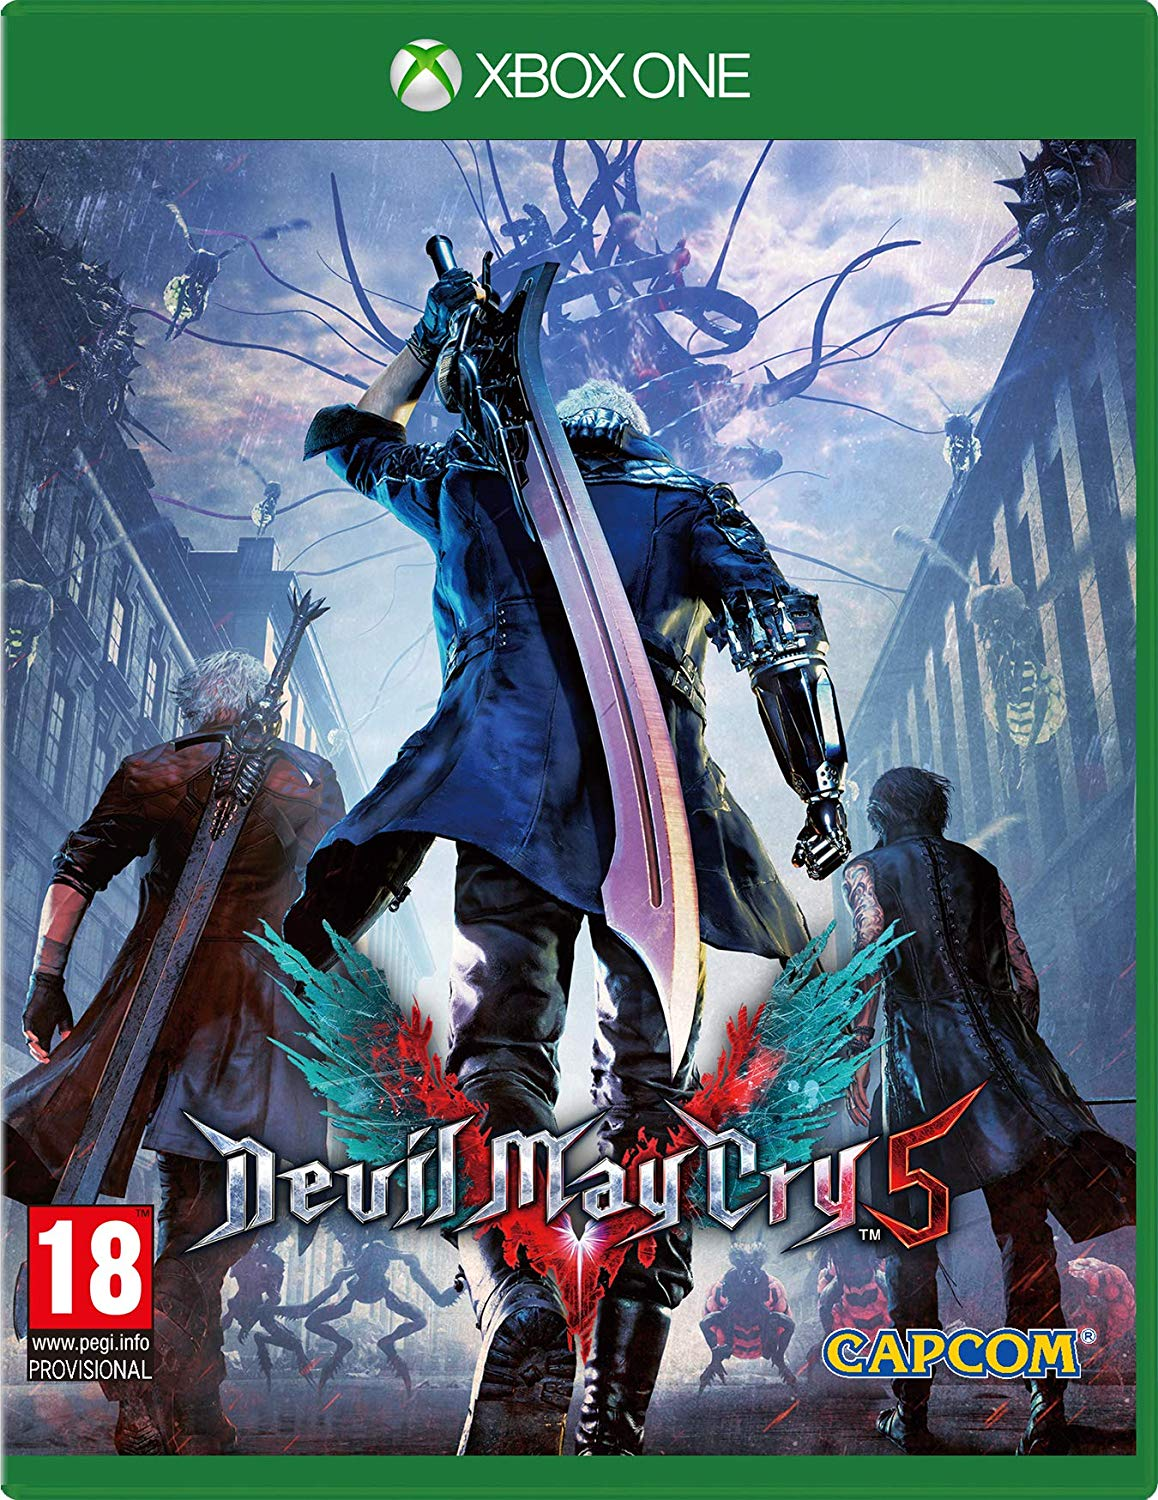 Devil May Cry 5 Xbox One, XBOX ONE, DVDMEGASTORE, DVDMEGASTORE